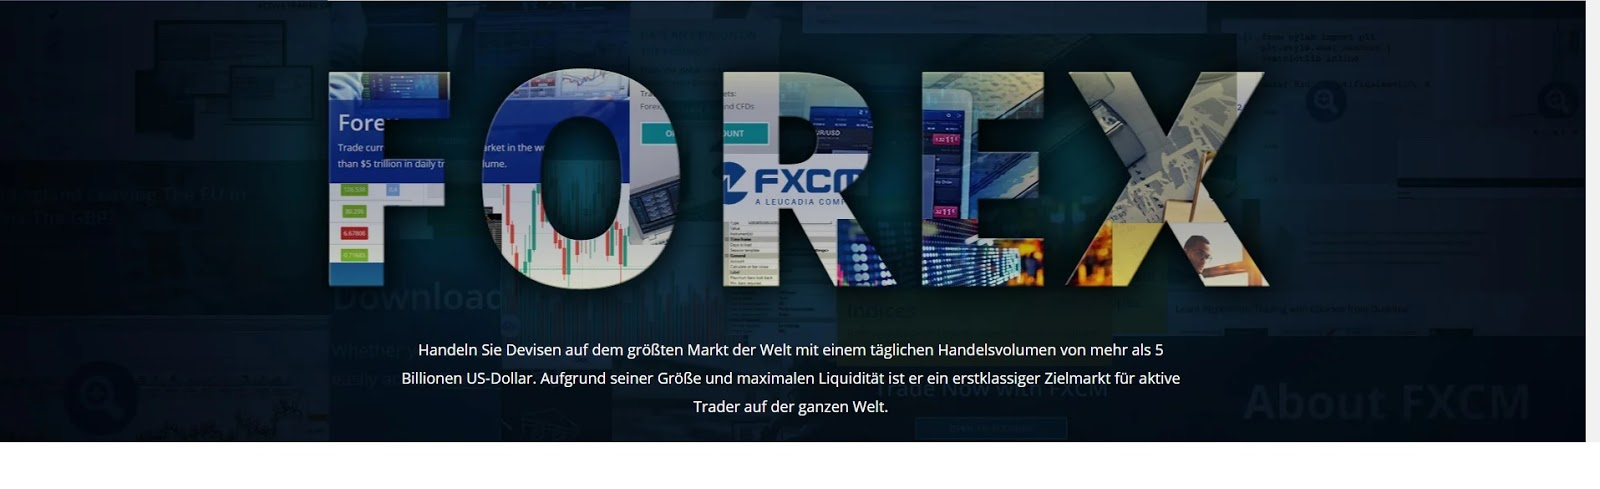 Trading Forex FXCM